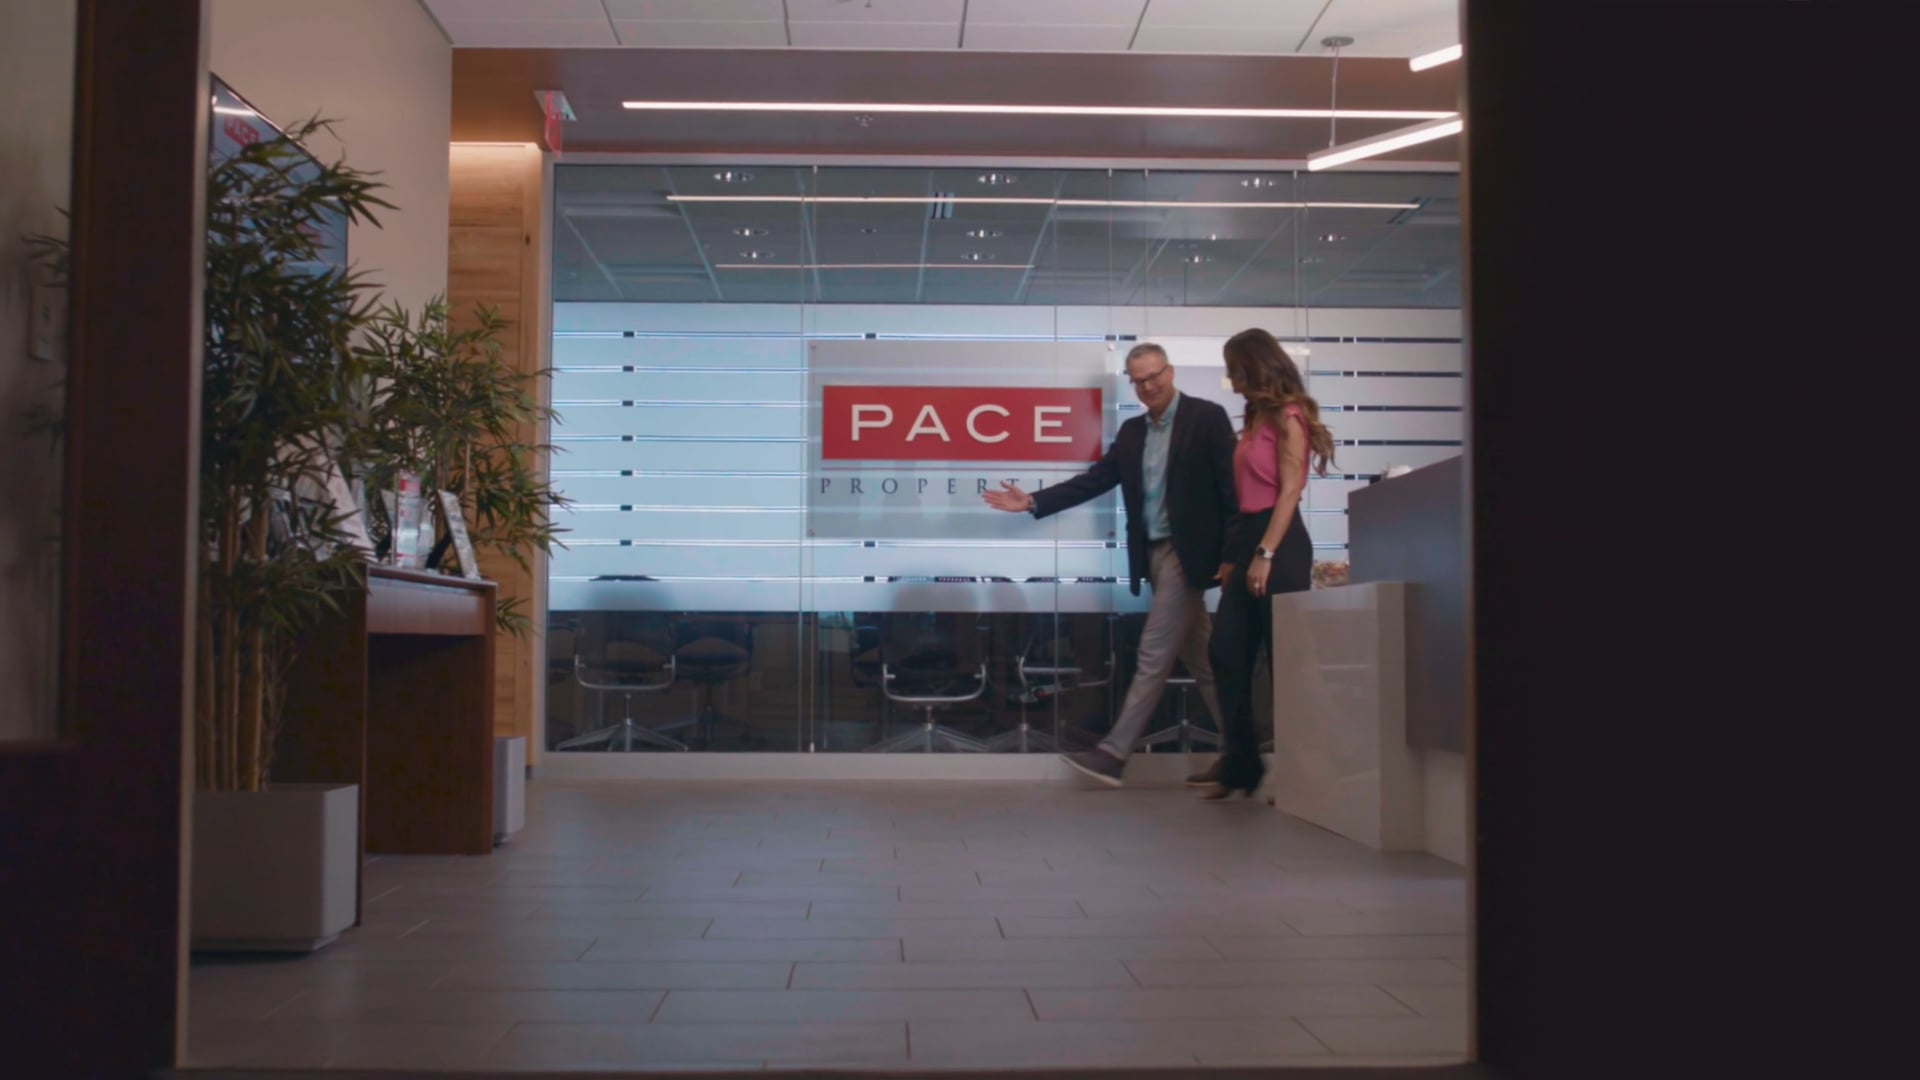 Pace Properties Overview